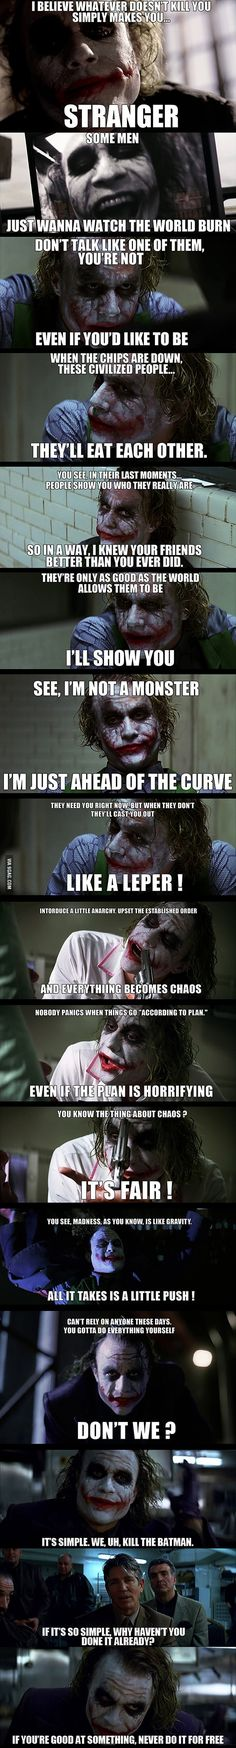 The greatest quotes from the Dark Knight and Heath Ledger (RIP). The Dark Knight is my favourite film of all time Joker Quotes, Movie Quotes, Batman Quotes, Scary Quotes, Life Quotes, Jocker Batman, Harley Quinn Et Le Joker, Der Joker, Joker Art